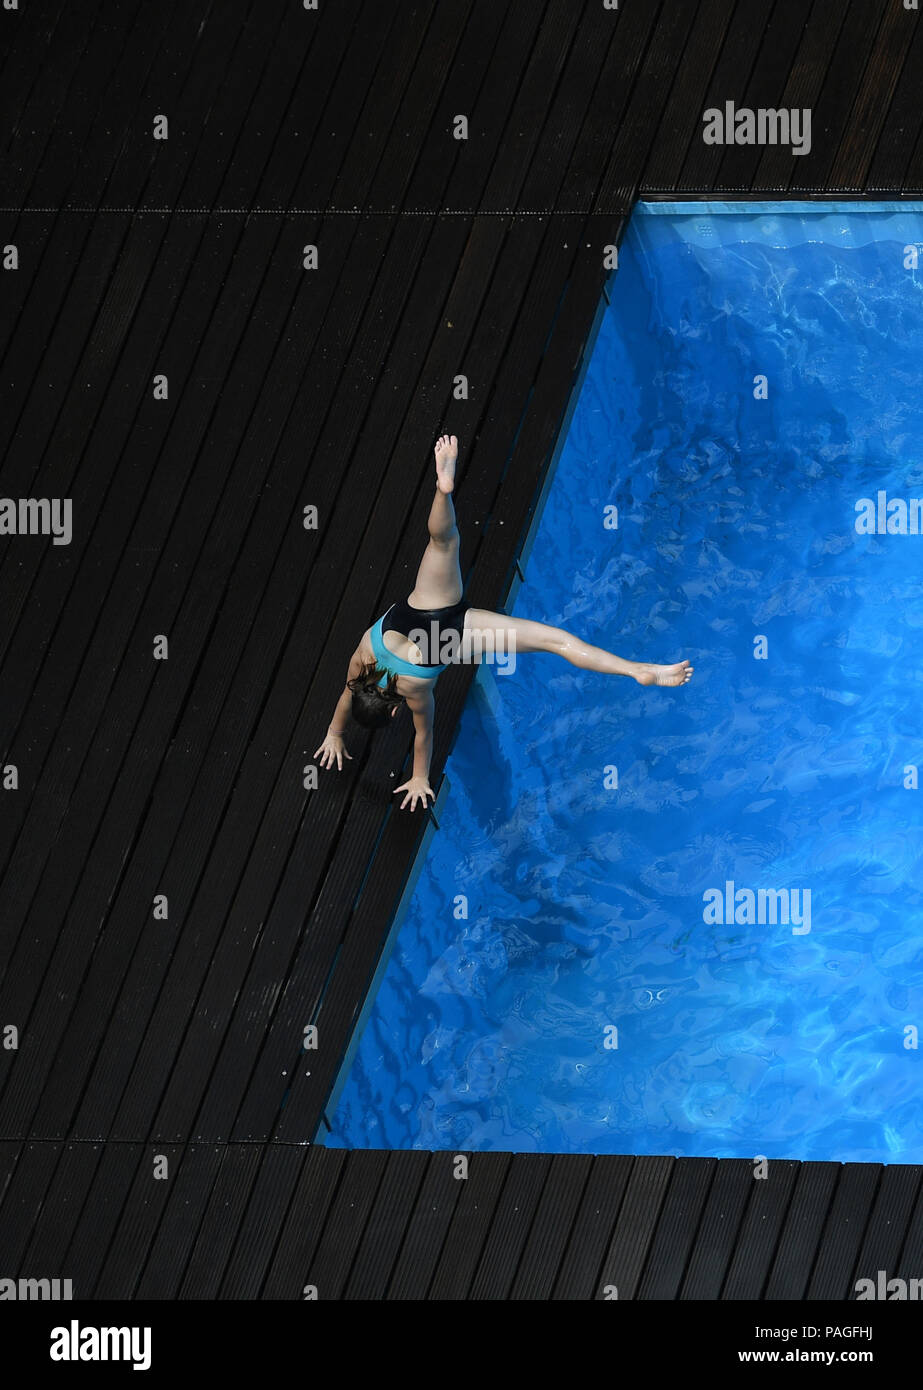 Essen, Germany. 22nd July, 2018. A girl jumps into the works swimming pool in the premises of the coking plant of the Zollverein Coal Mine Industrial Complex (Zeche Zollverein). The Frankfurt artists Dirk Paschke and Daniel Milohnic created the work swimming pool in 2001 in the course of the art project 'Zeitgenoessische Kunst und Kritik' (lit. contemporary art and criticism). Credit: Ina Fassbender/dpa - ATTENTION: editorial use only in connection with the latest coverage and only if the credit mentioned above is referenced in full/dpa/Alamy Live News - Stock Image